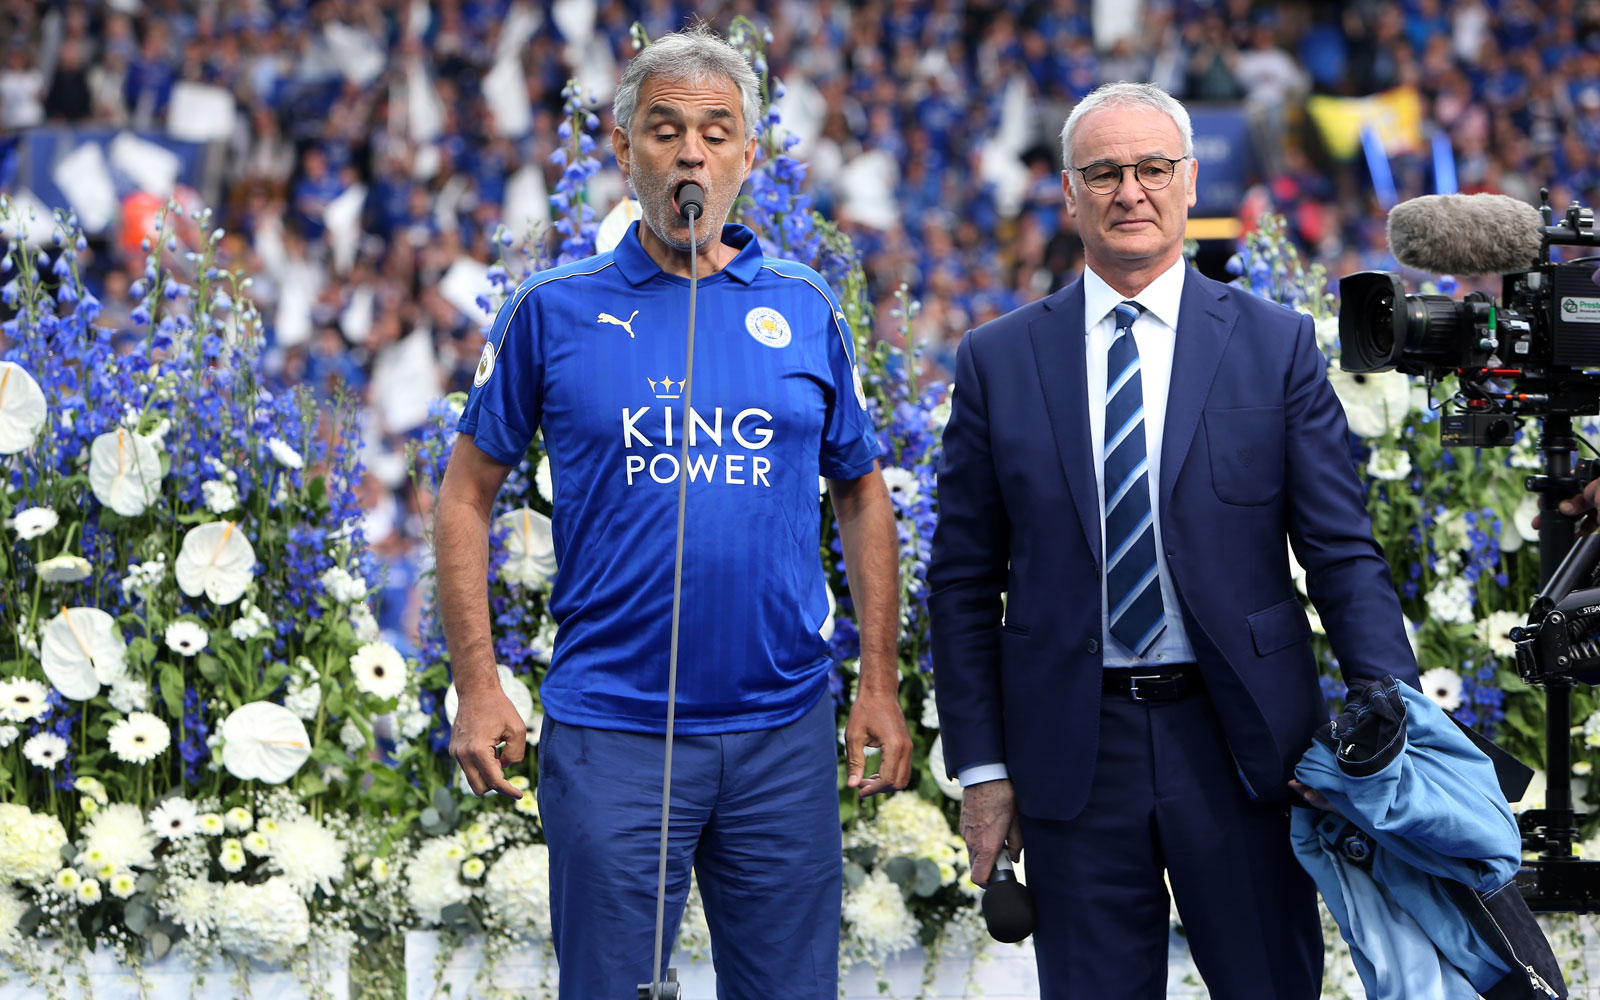 Famed tenor Andrea Bocelli appears on stage with Claudio Ranieri to sing ahead of Leicester's match vs. Everton as part of the title celebrations.